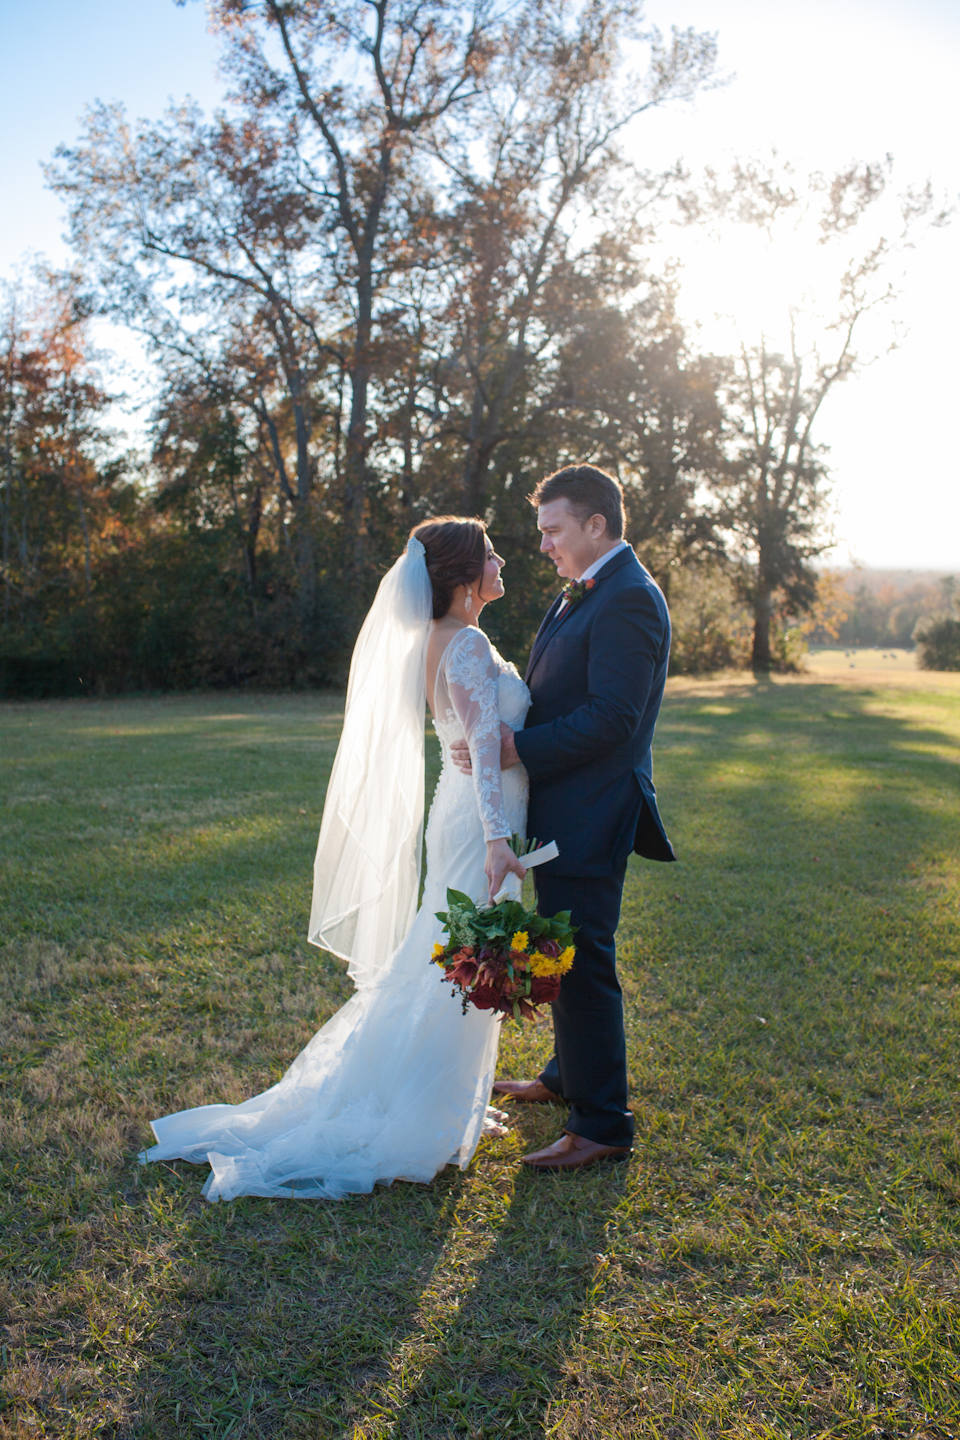 charlestonweddingphotographersavannahweddingphotographerdestinationweddingphotographerlowcountryweddingphotographer20.jpg